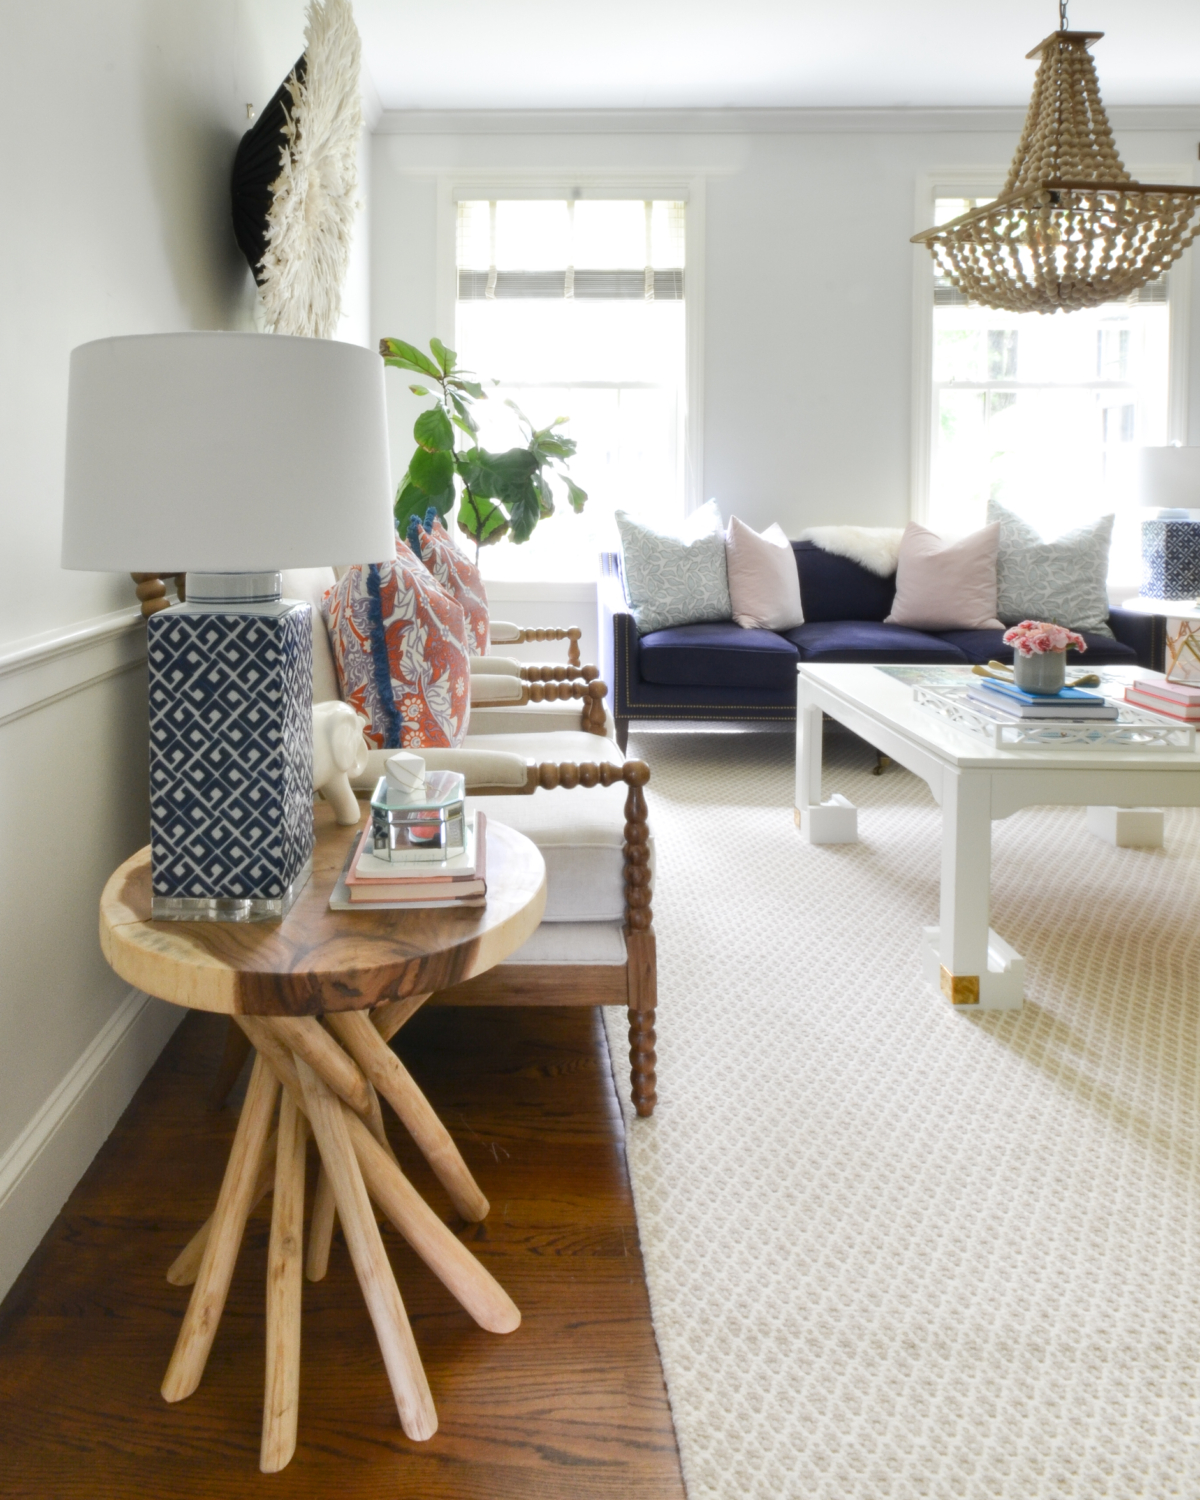 Living room with a neutral base, gold, navy blue, coral. Juju hat feather wall hanging is a striking centerpiece.